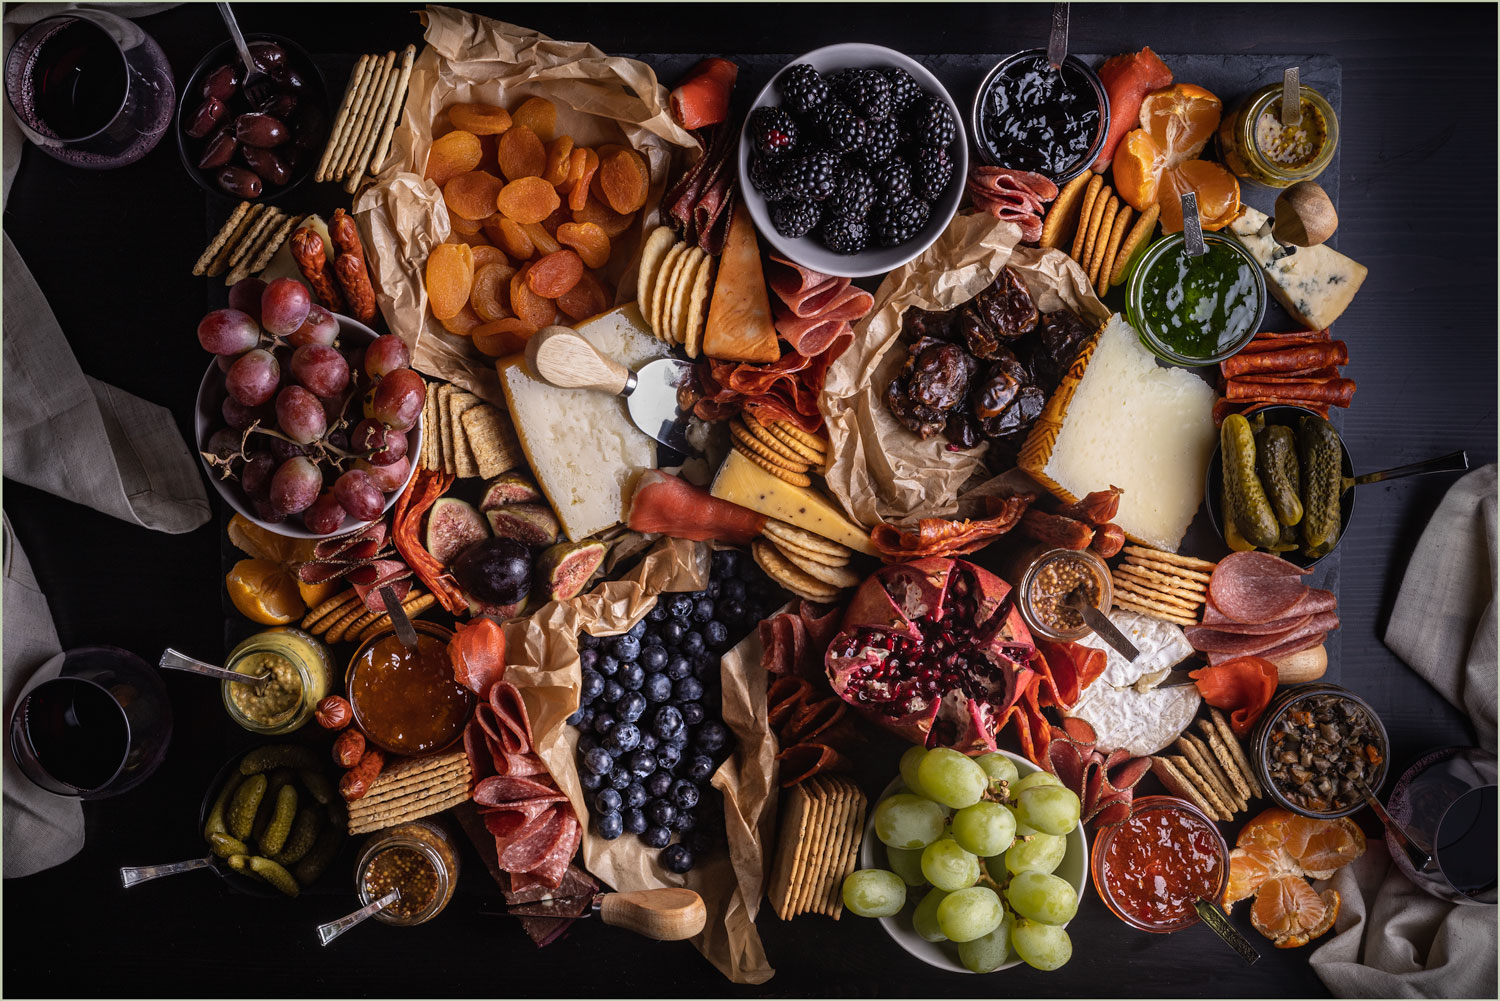 A giant charcuterie board willed with a variety of fruits, cured meats, cheeses, spreads and a crackers.